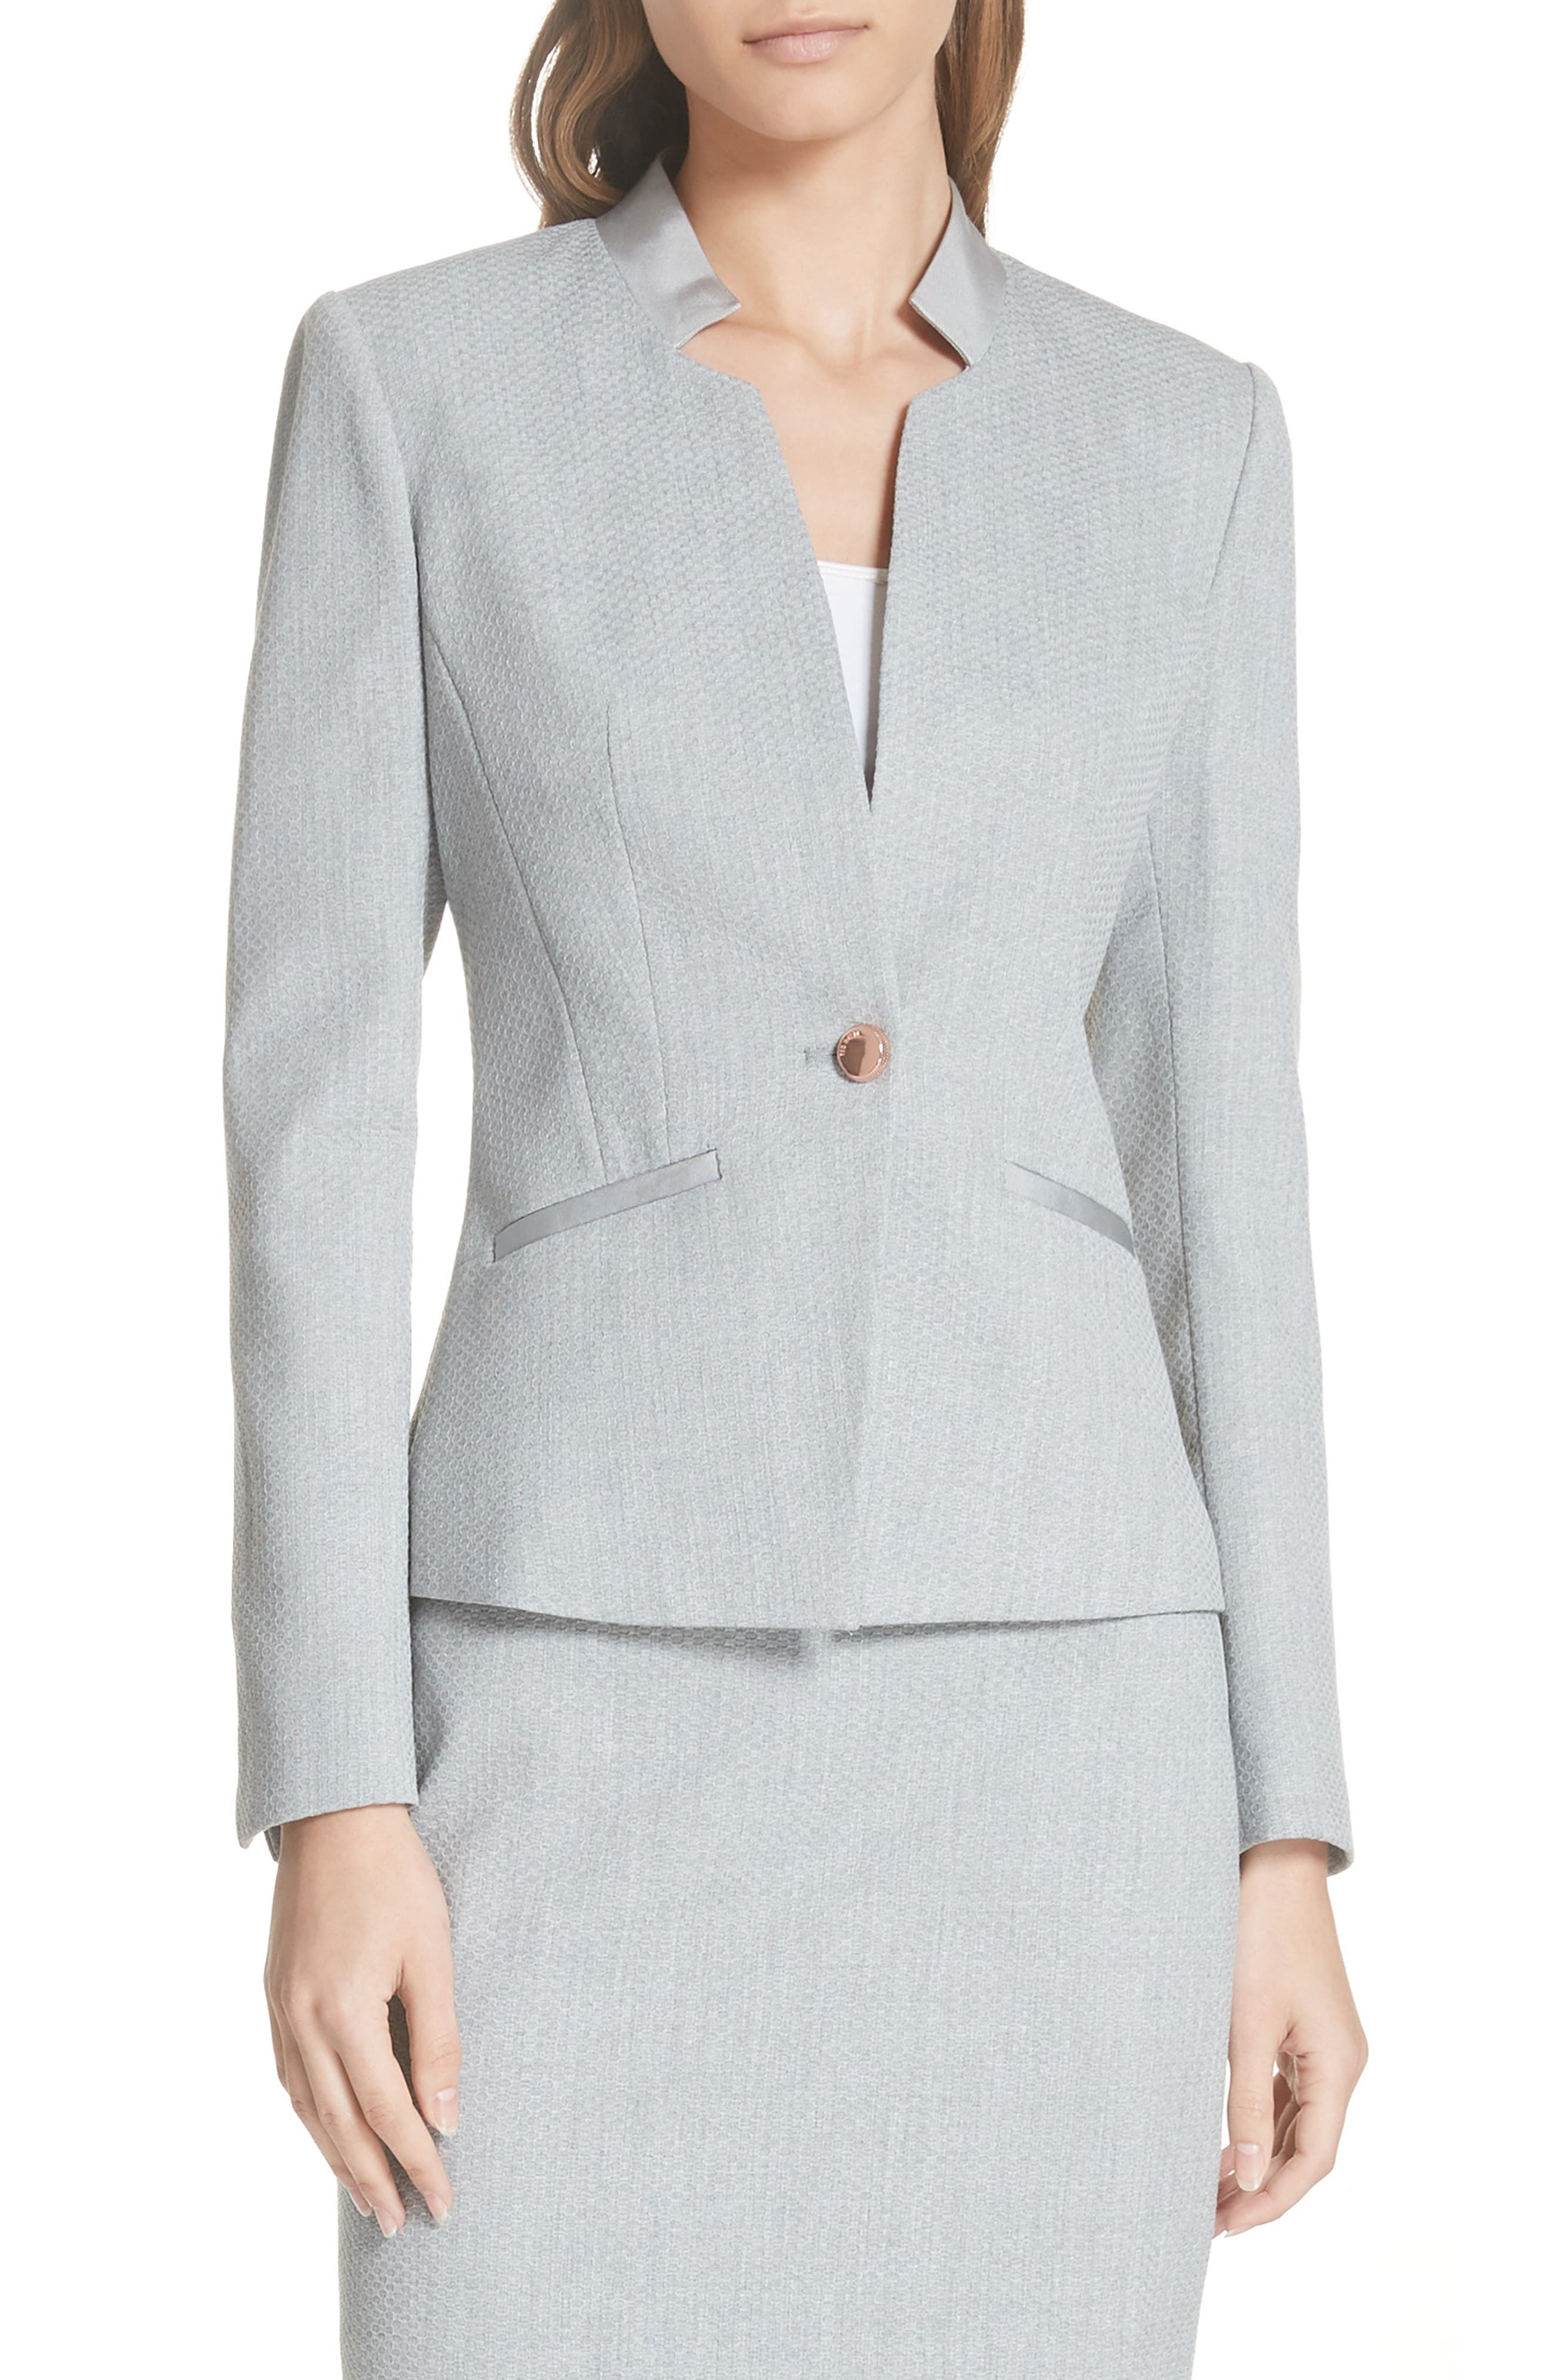 Ted Working Title Daizi Suit Jacket,                             Main thumbnail 1, color,                             GREY